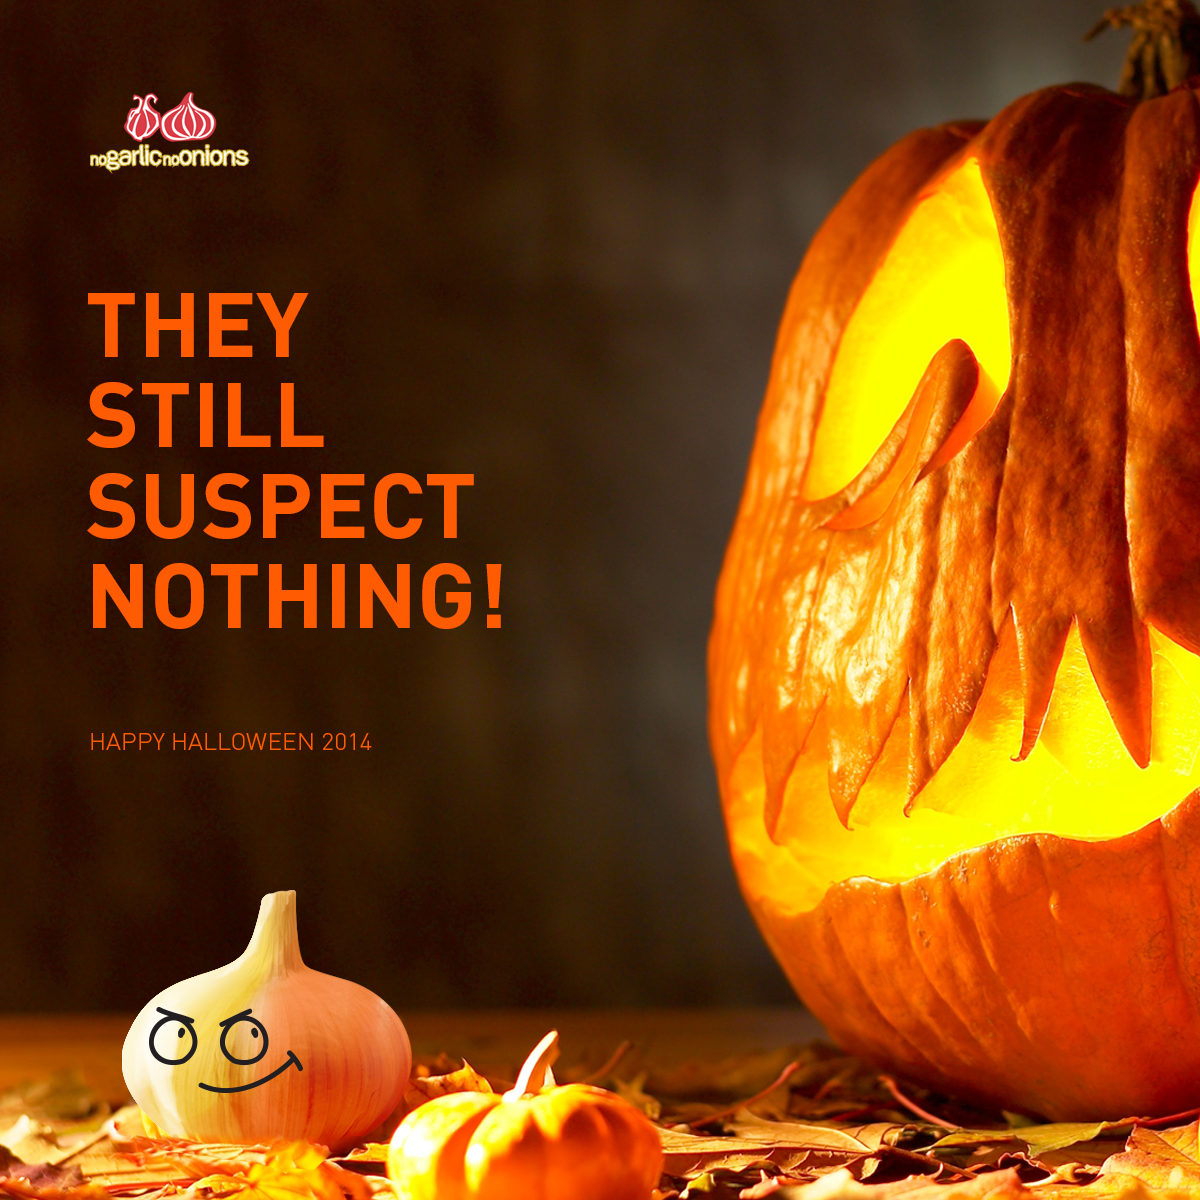 ngno-FB-posts-haloween-oct-2014-1